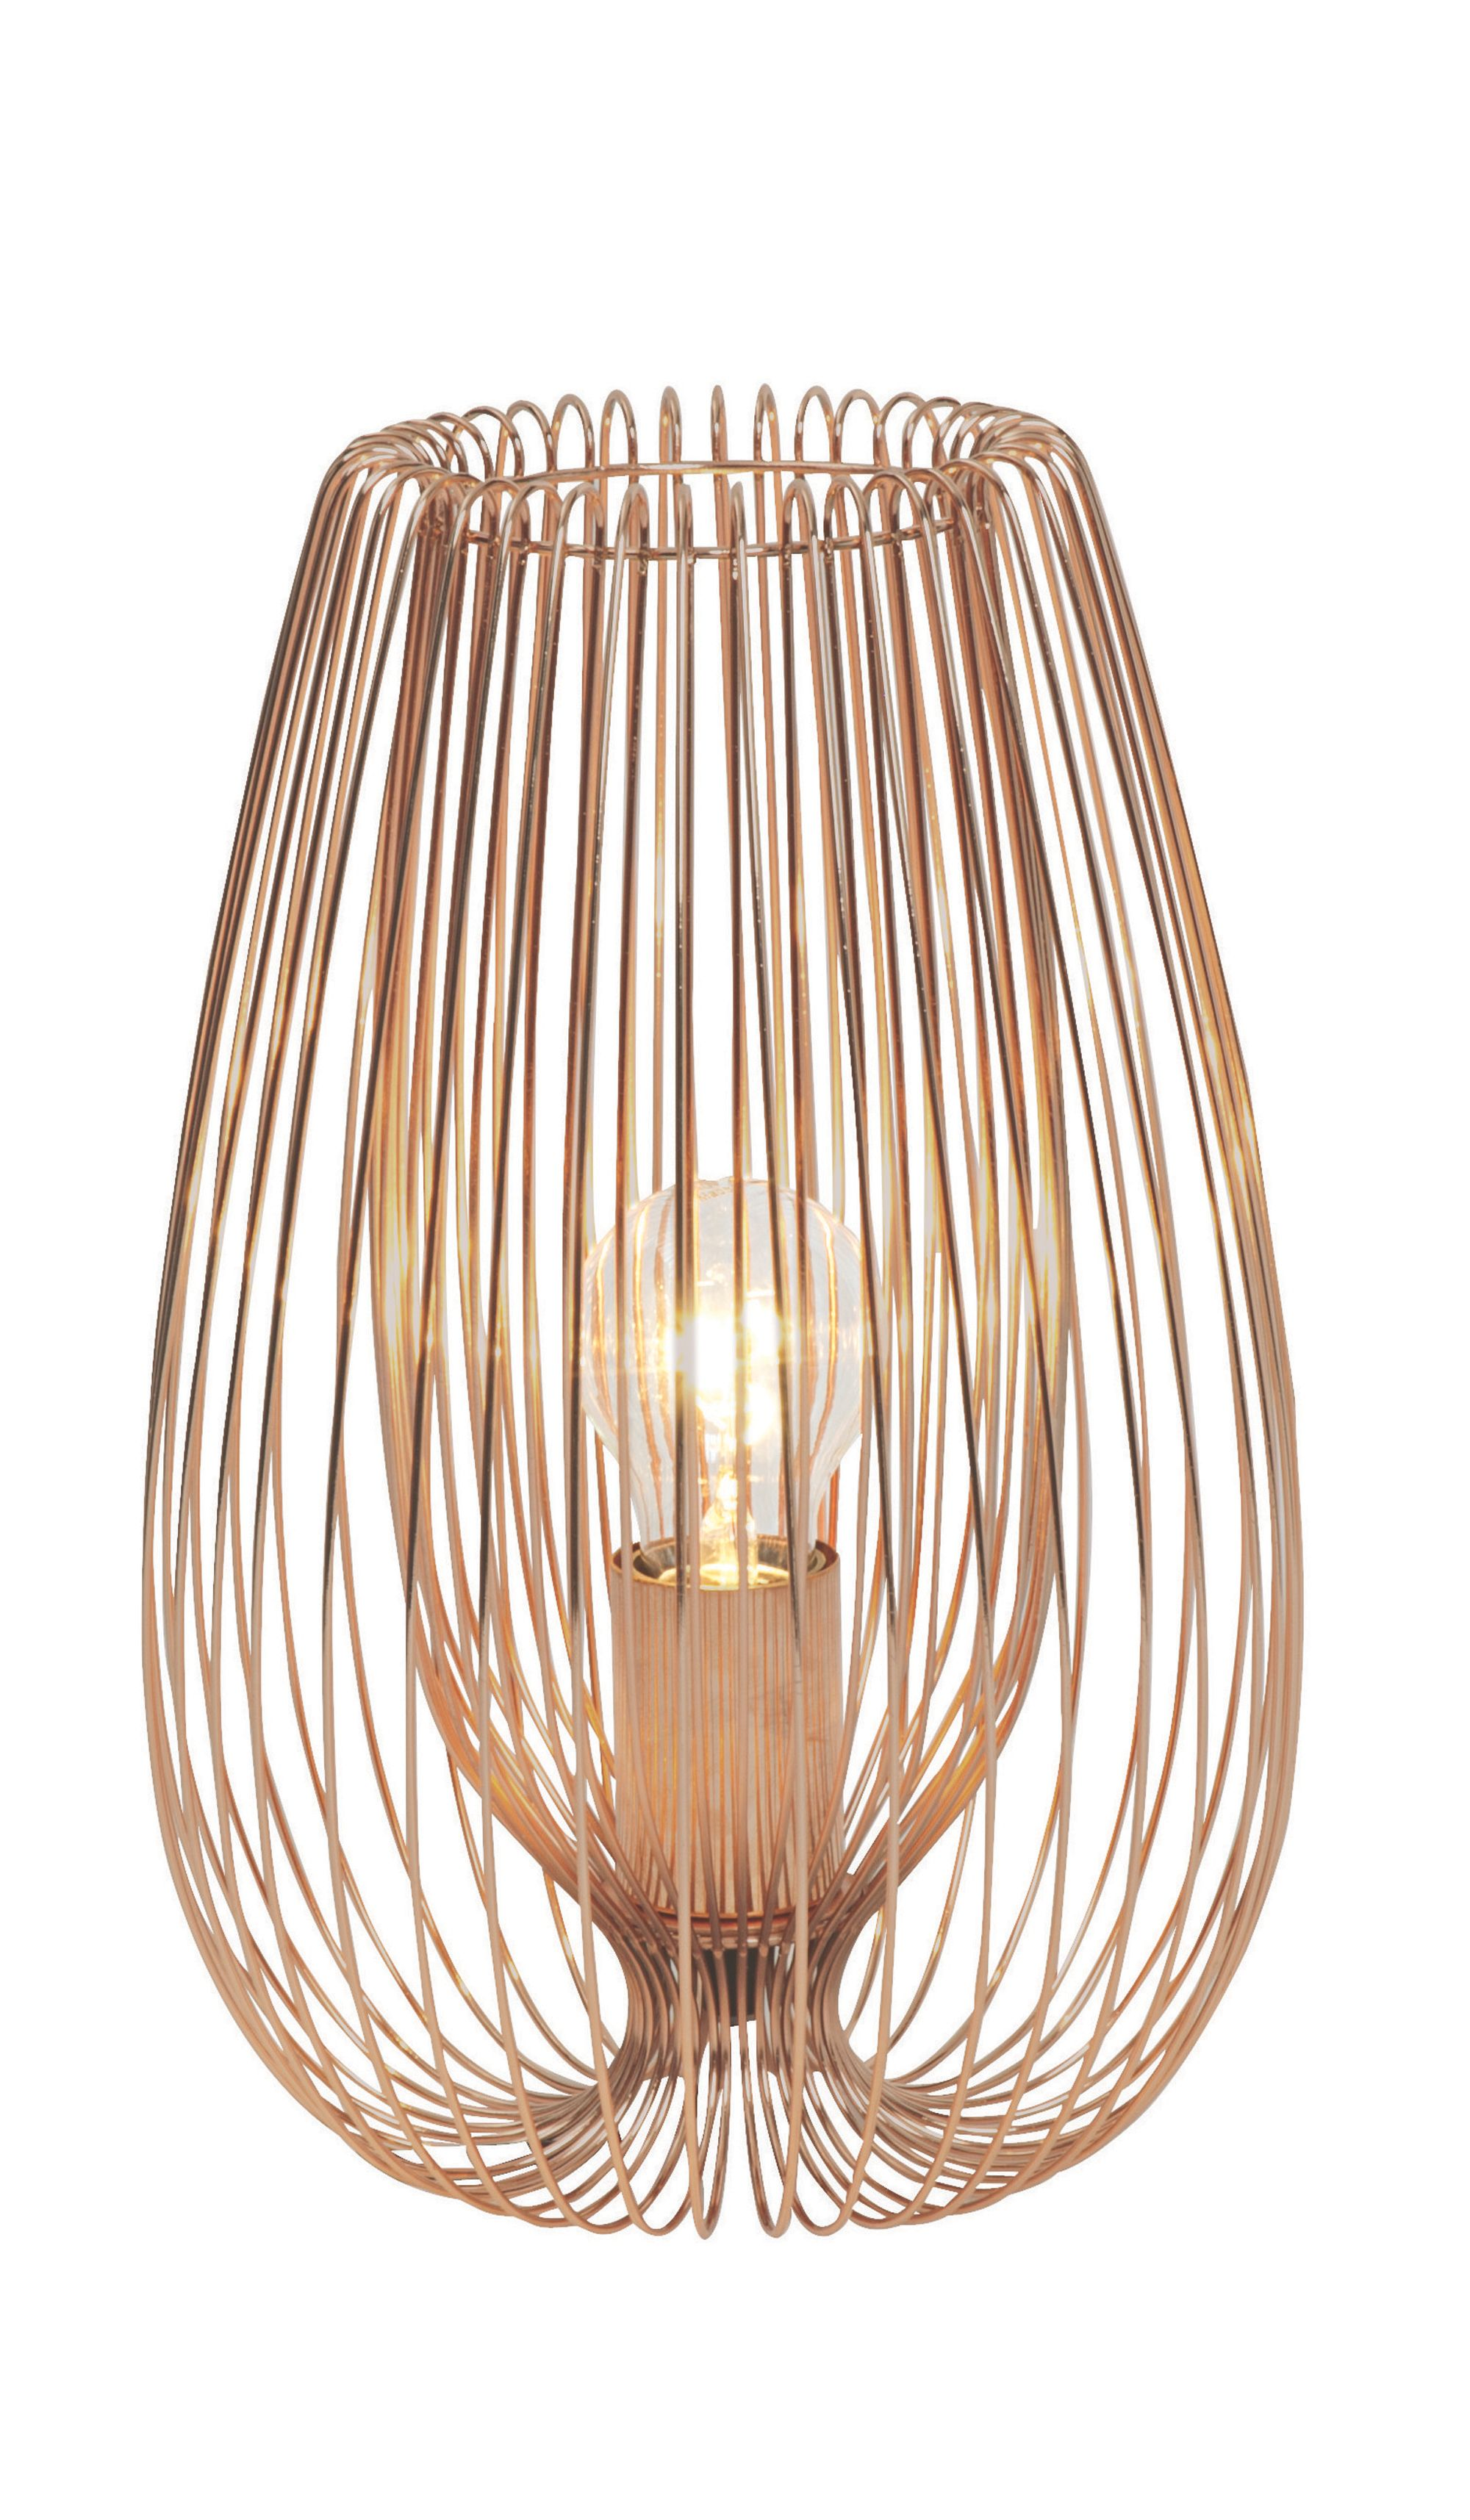 Jonas copper wire table lamp greentooth Choice Image